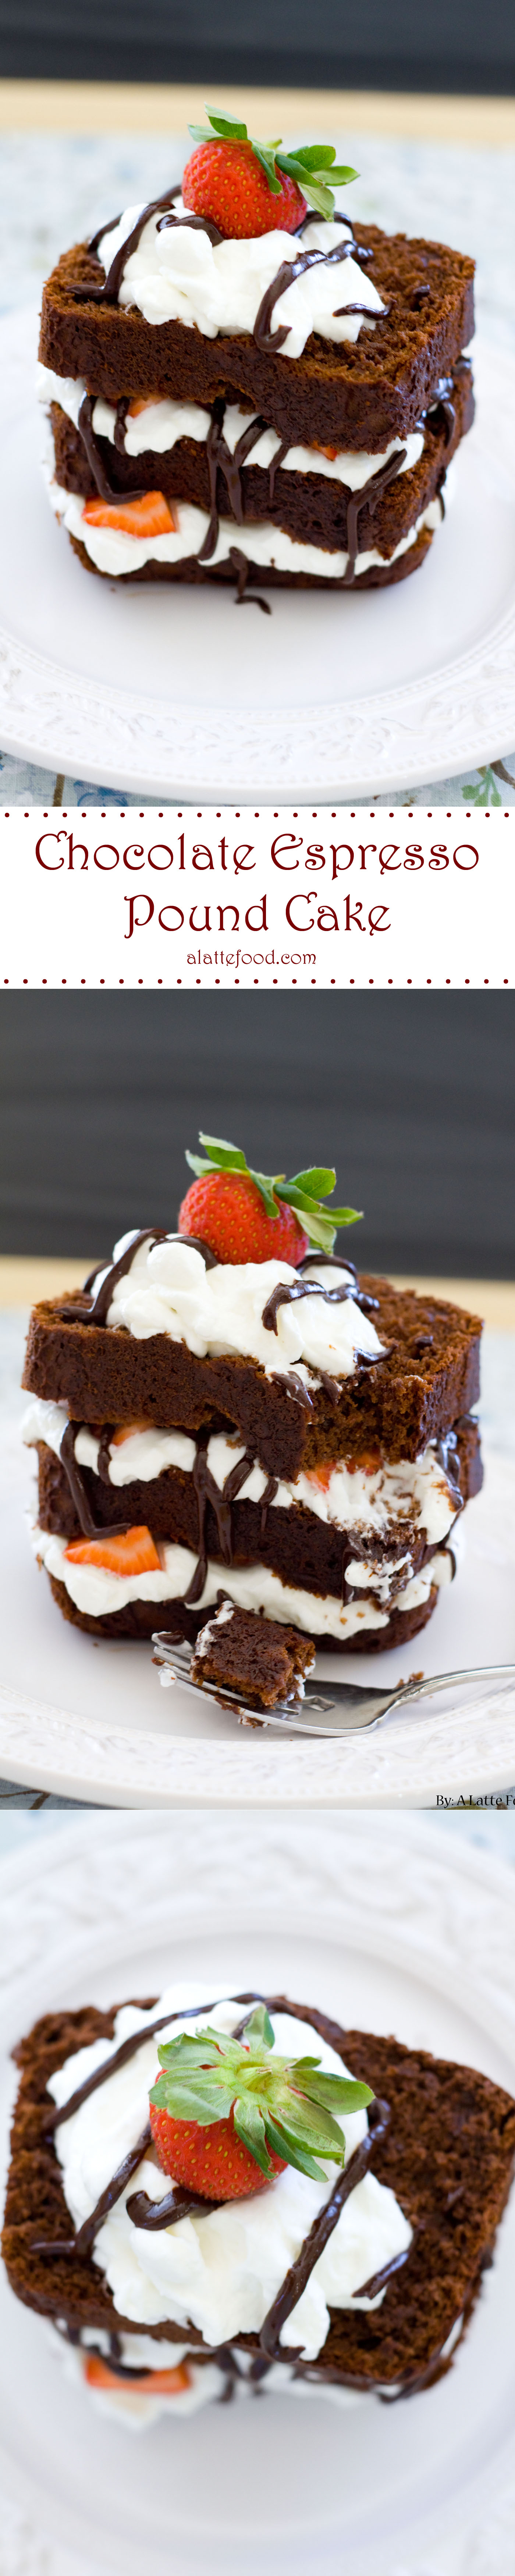 Chocolate Espresso Pound Cake: This chocolate espresso pound cake is rich, decadent, and absolutely chocolatey! With homemade whipped cream, fresh strawberries, and chocolate ganache, this is a perfect Valentine's dessert!